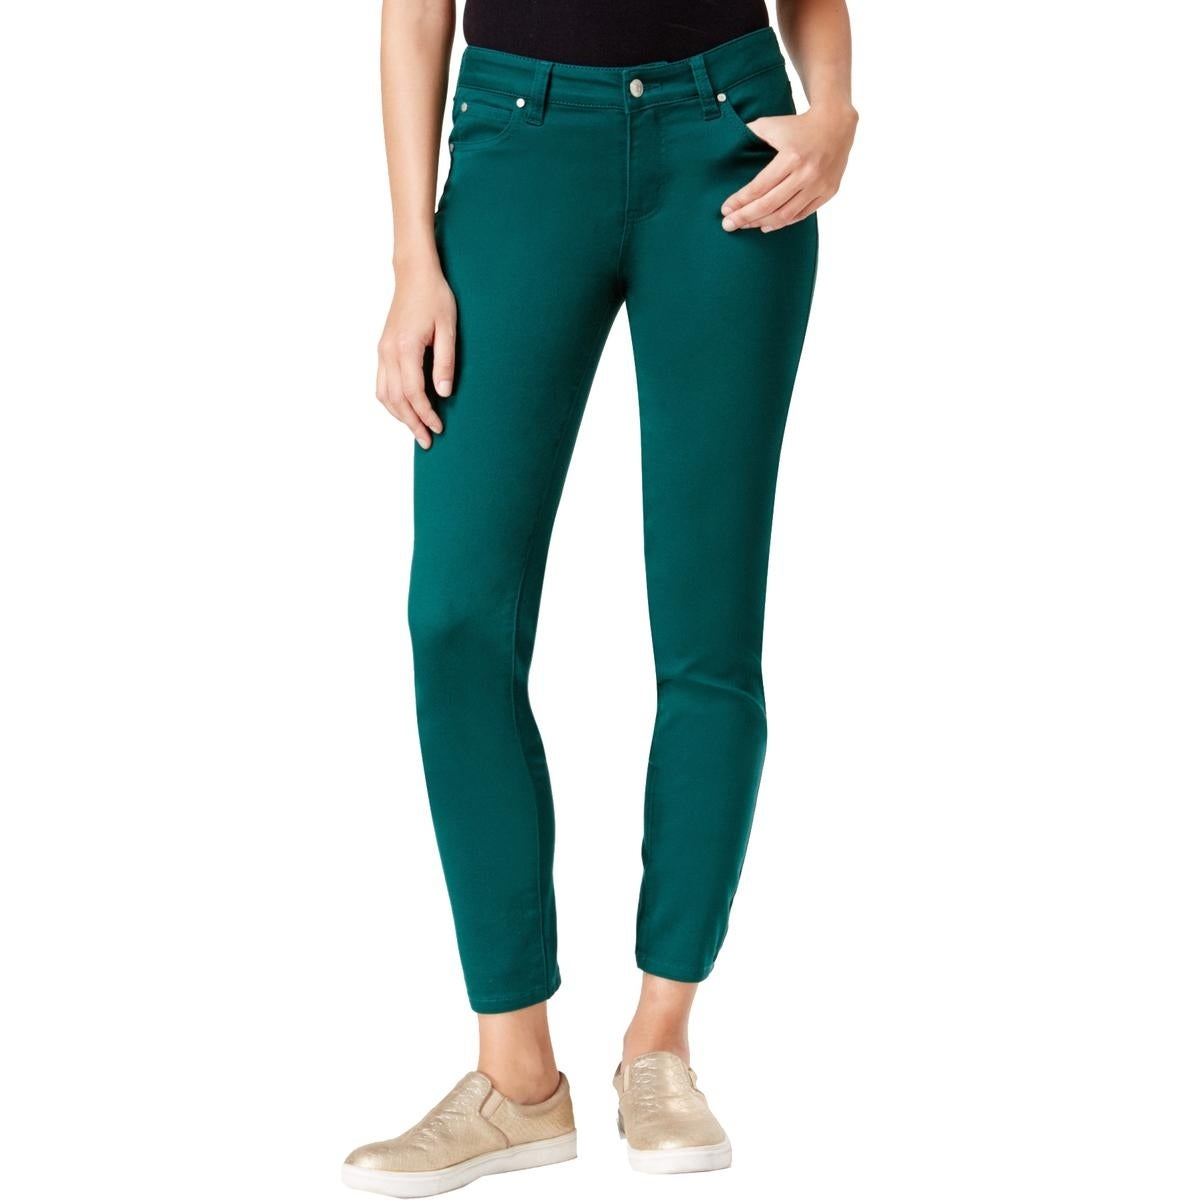 ec78c87c45d Shop Celebrity Pink Womens Juniors Jayden Skinny Jeans Colored Mid-Rise -  Free Shipping On Orders Over  45 - Overstock - 17404053